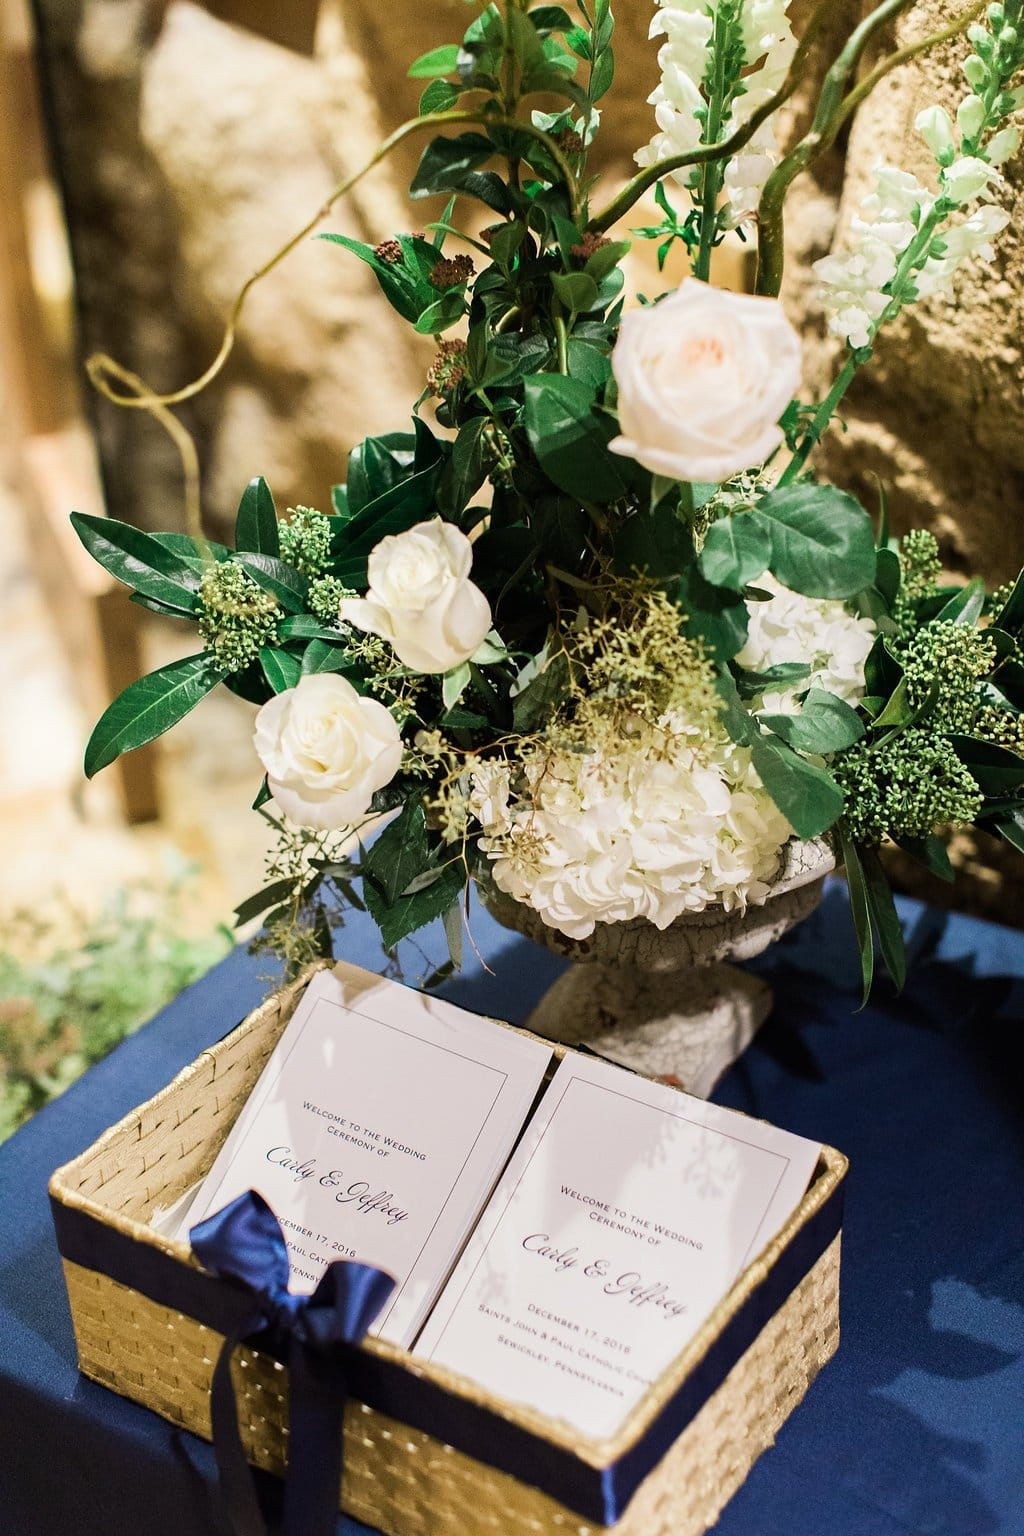 Ceremony details of flowers and programs - J Verno Studios Winter Wedding